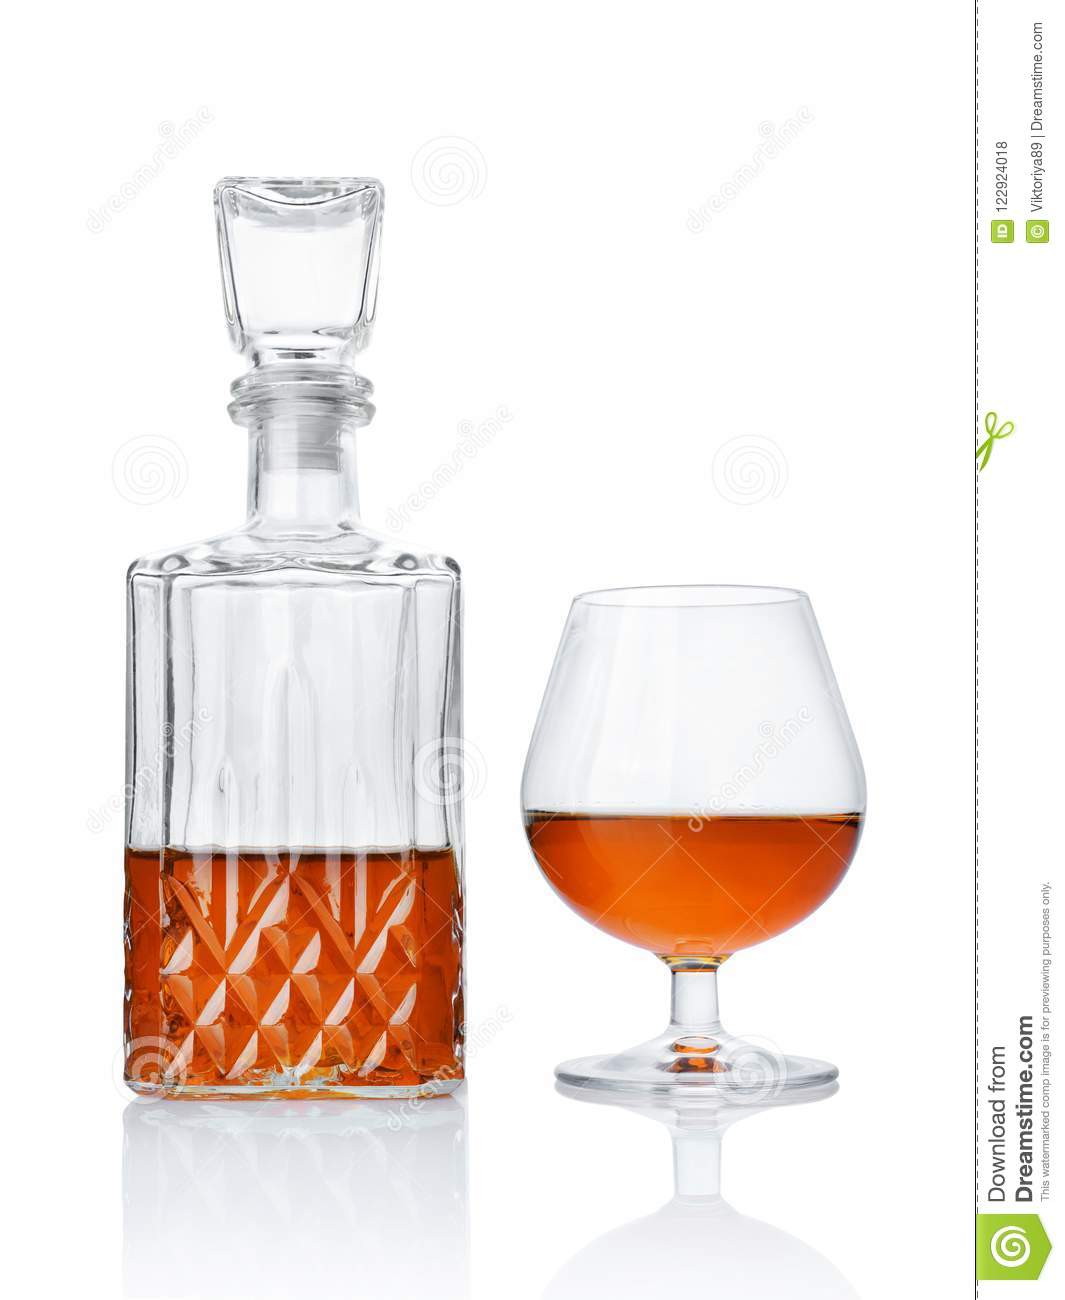 Strong Alcoholic Drink Cognac In Sniffer Glass And Crystal